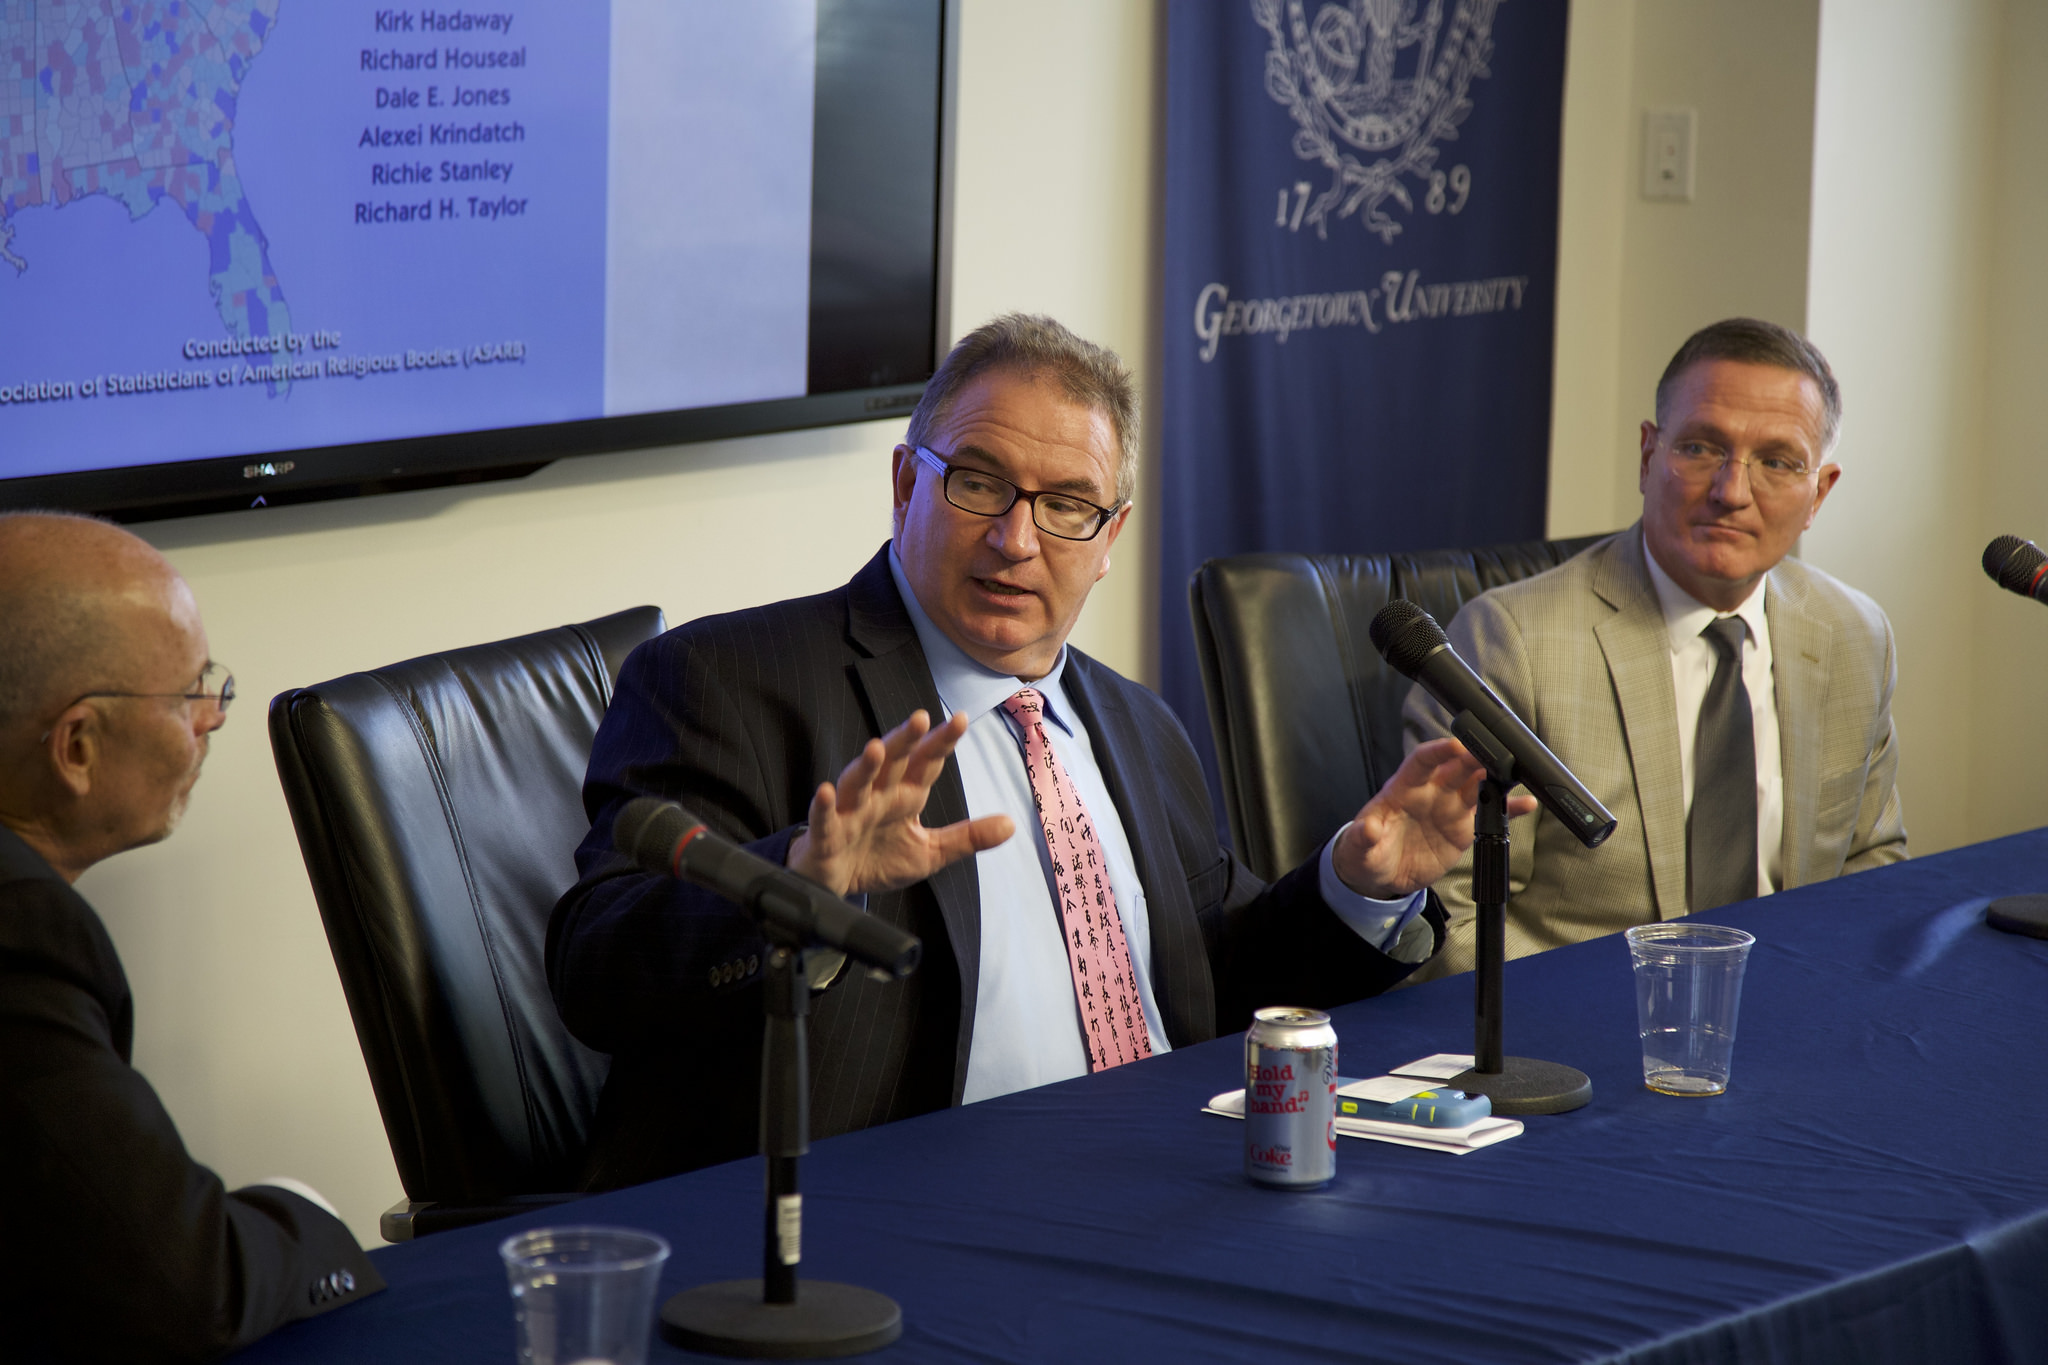 John J. DiIulio, Jr. (center) is the Frederic Fox Leadership Professor at the University of Pennsylvania and faculty director of the Fox Leadership Program and the Program for Research on Religion and Urban Civil Society (PRRUCS).